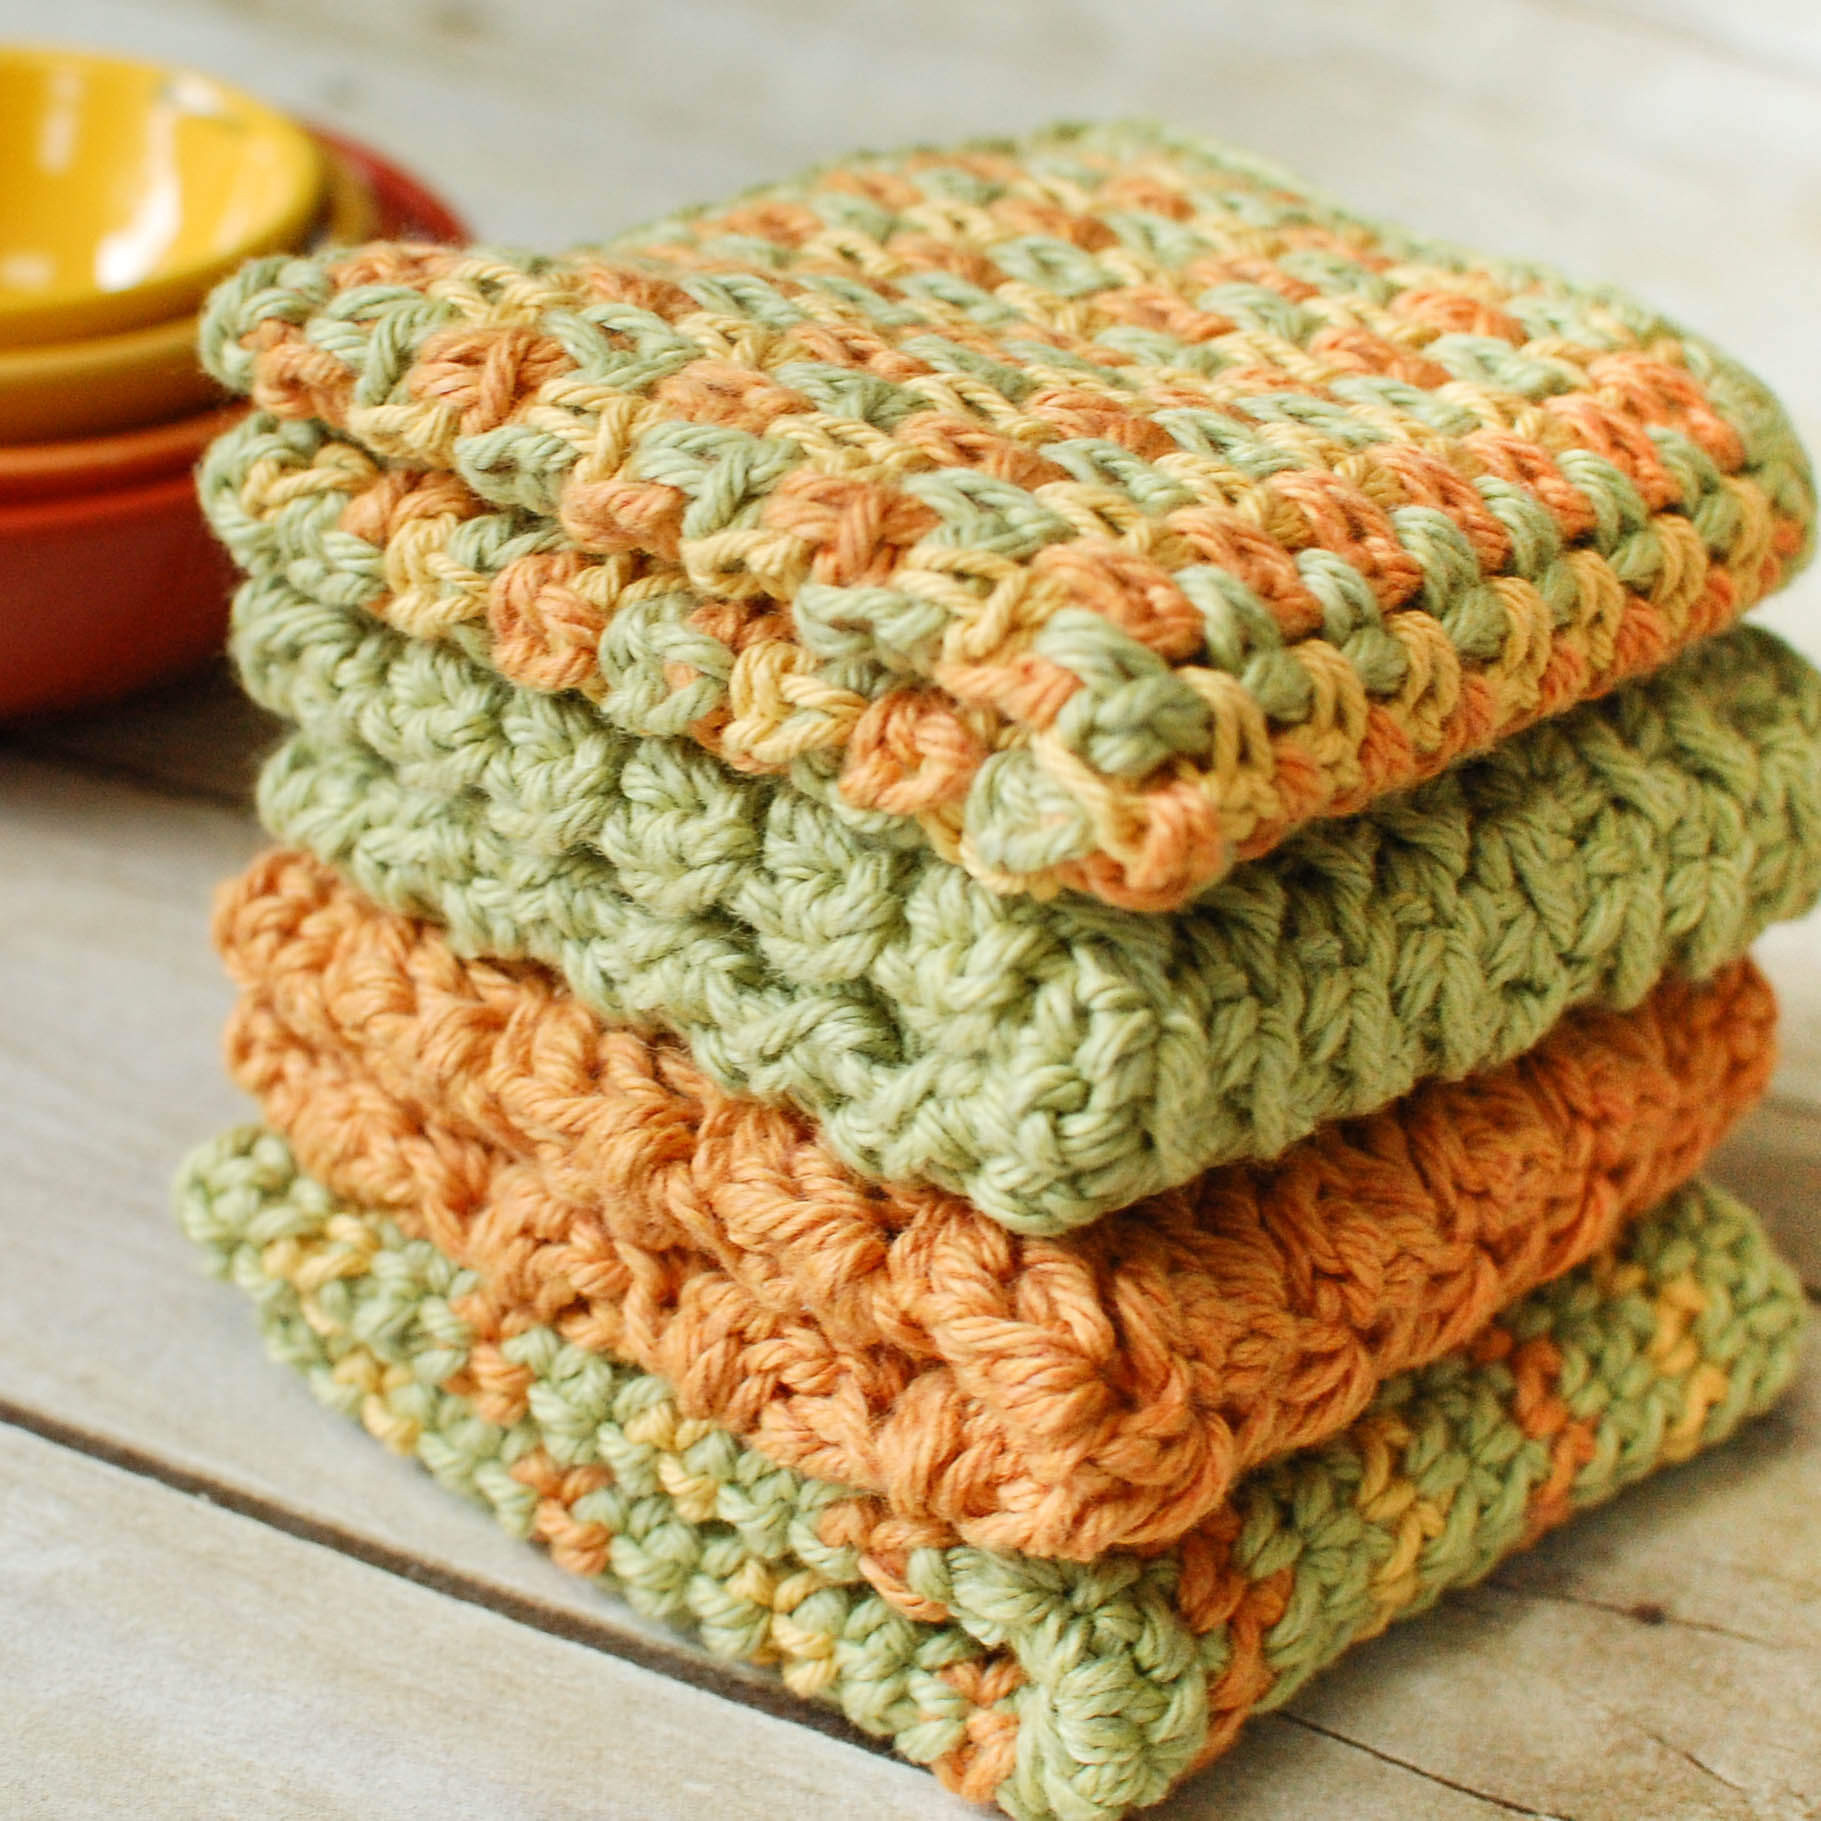 Simple Crochet Patterns Best Of Crochet Dishcloths … 4 Quick and Easy Crochet Dishcloth Of Delightful 49 Models Simple Crochet Patterns